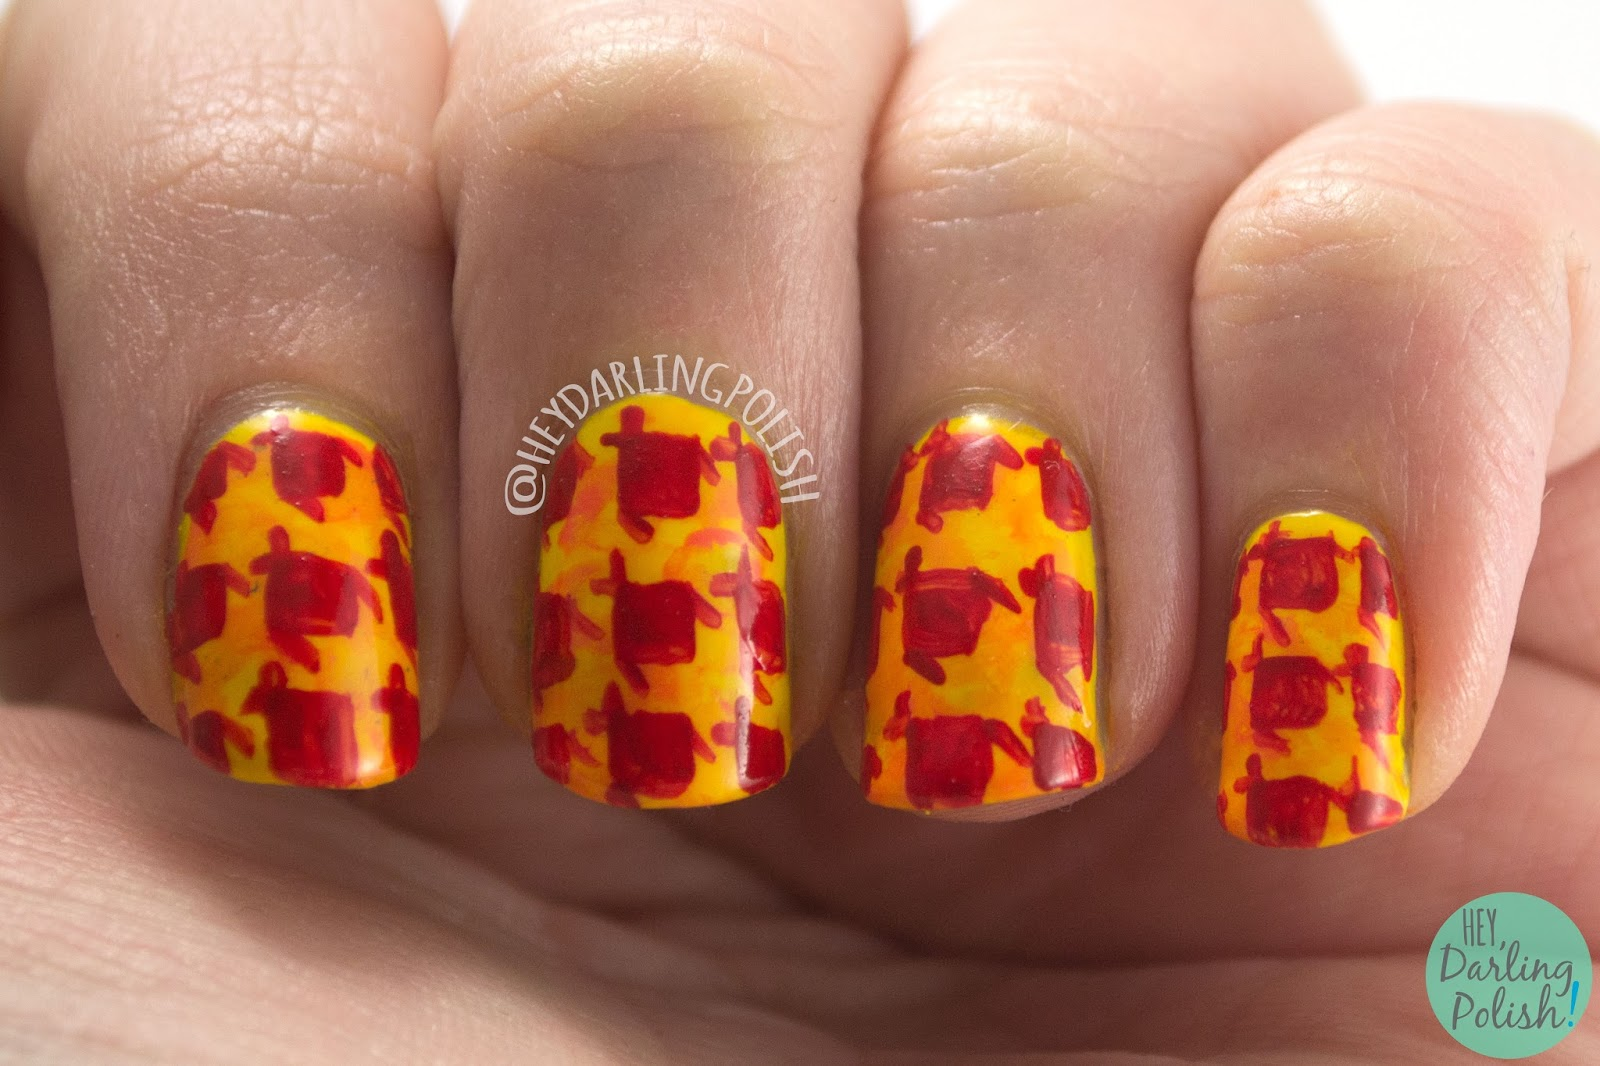 nails, nail art, nail polish, houndstooth, hey darling polish, warm, 52 week challenge, pattern